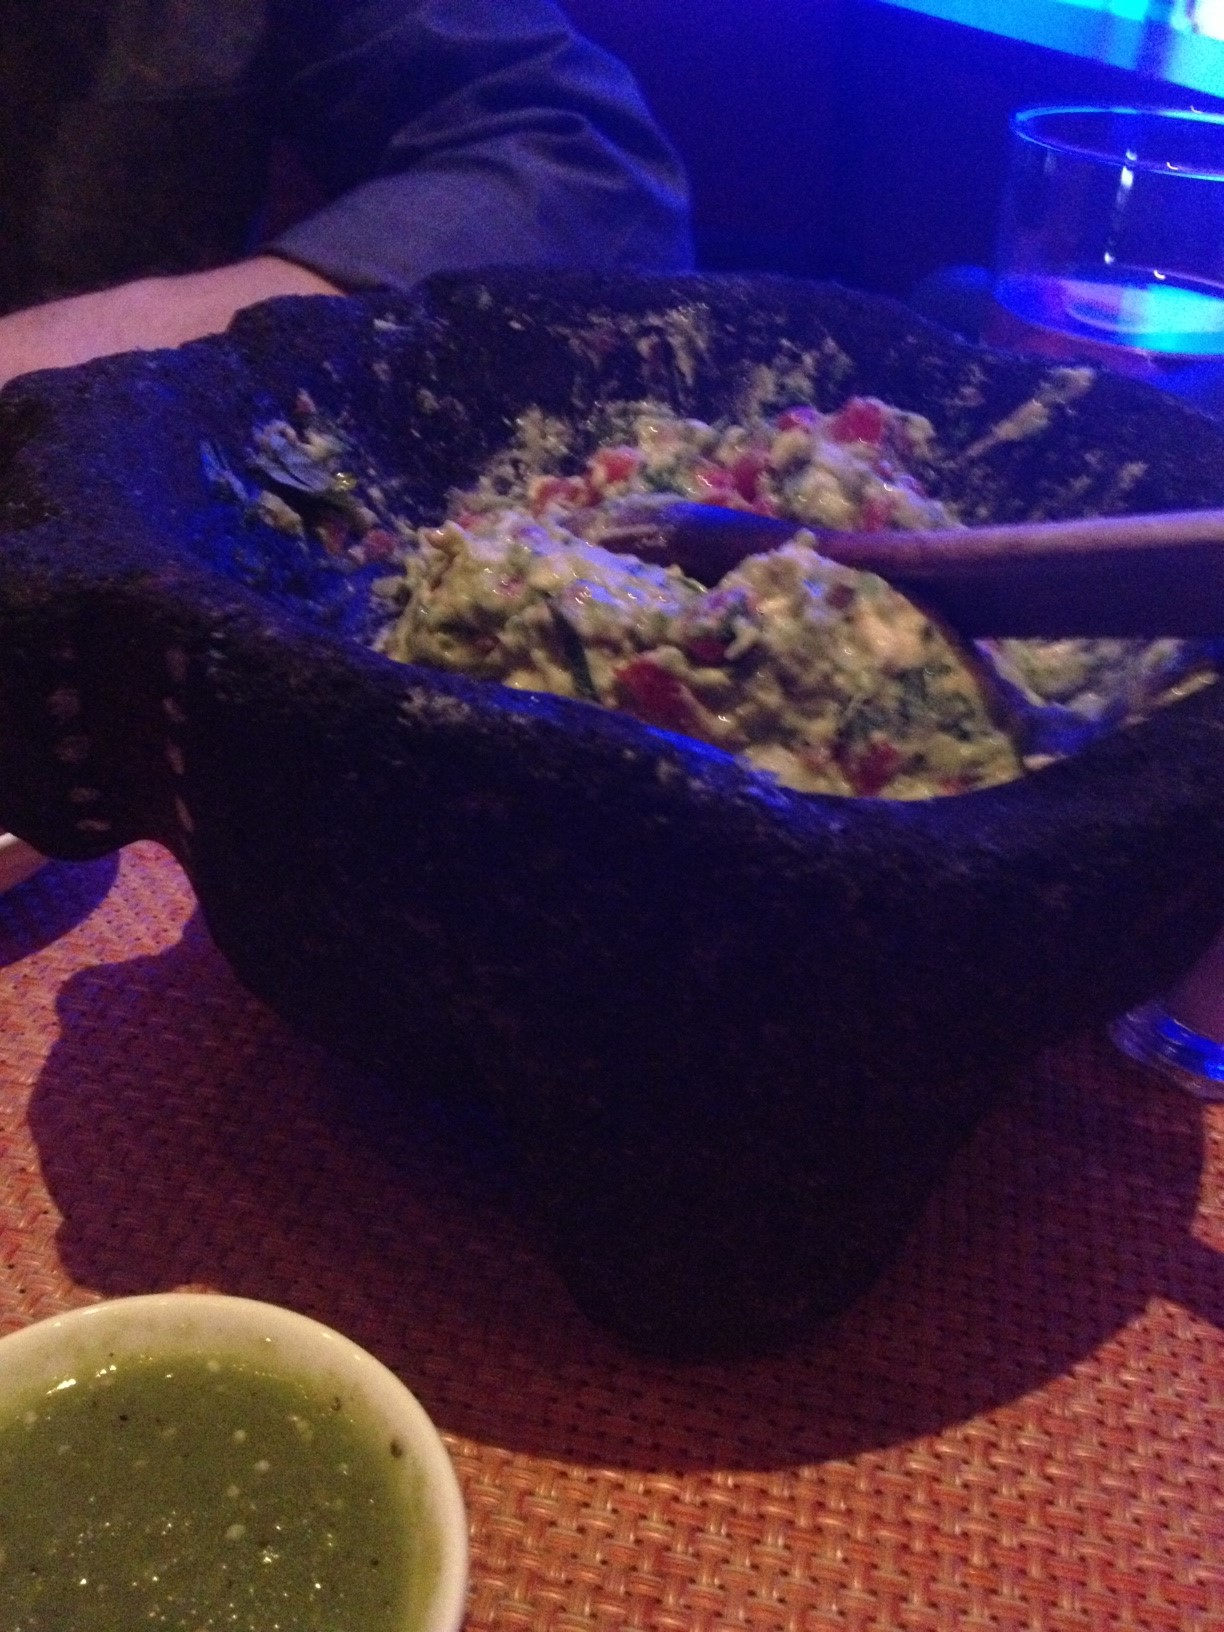 GUACAMOLE FOR DAYS!